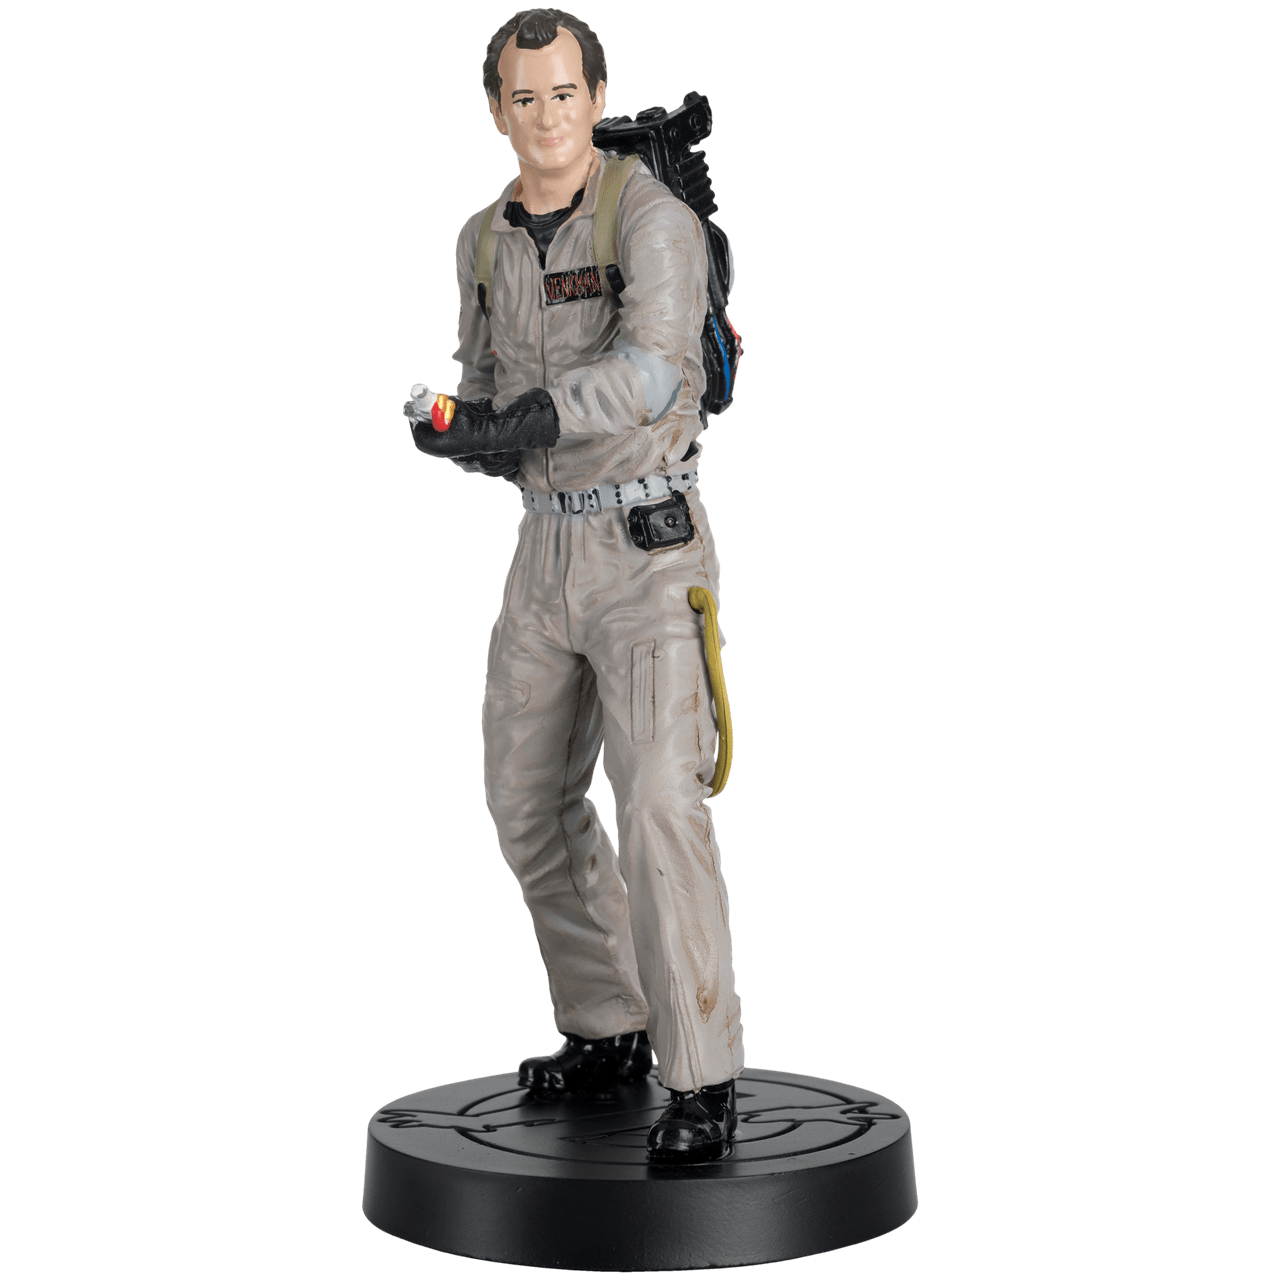 Ghostbusters 4 Figurine Set: Hero Collector - 3